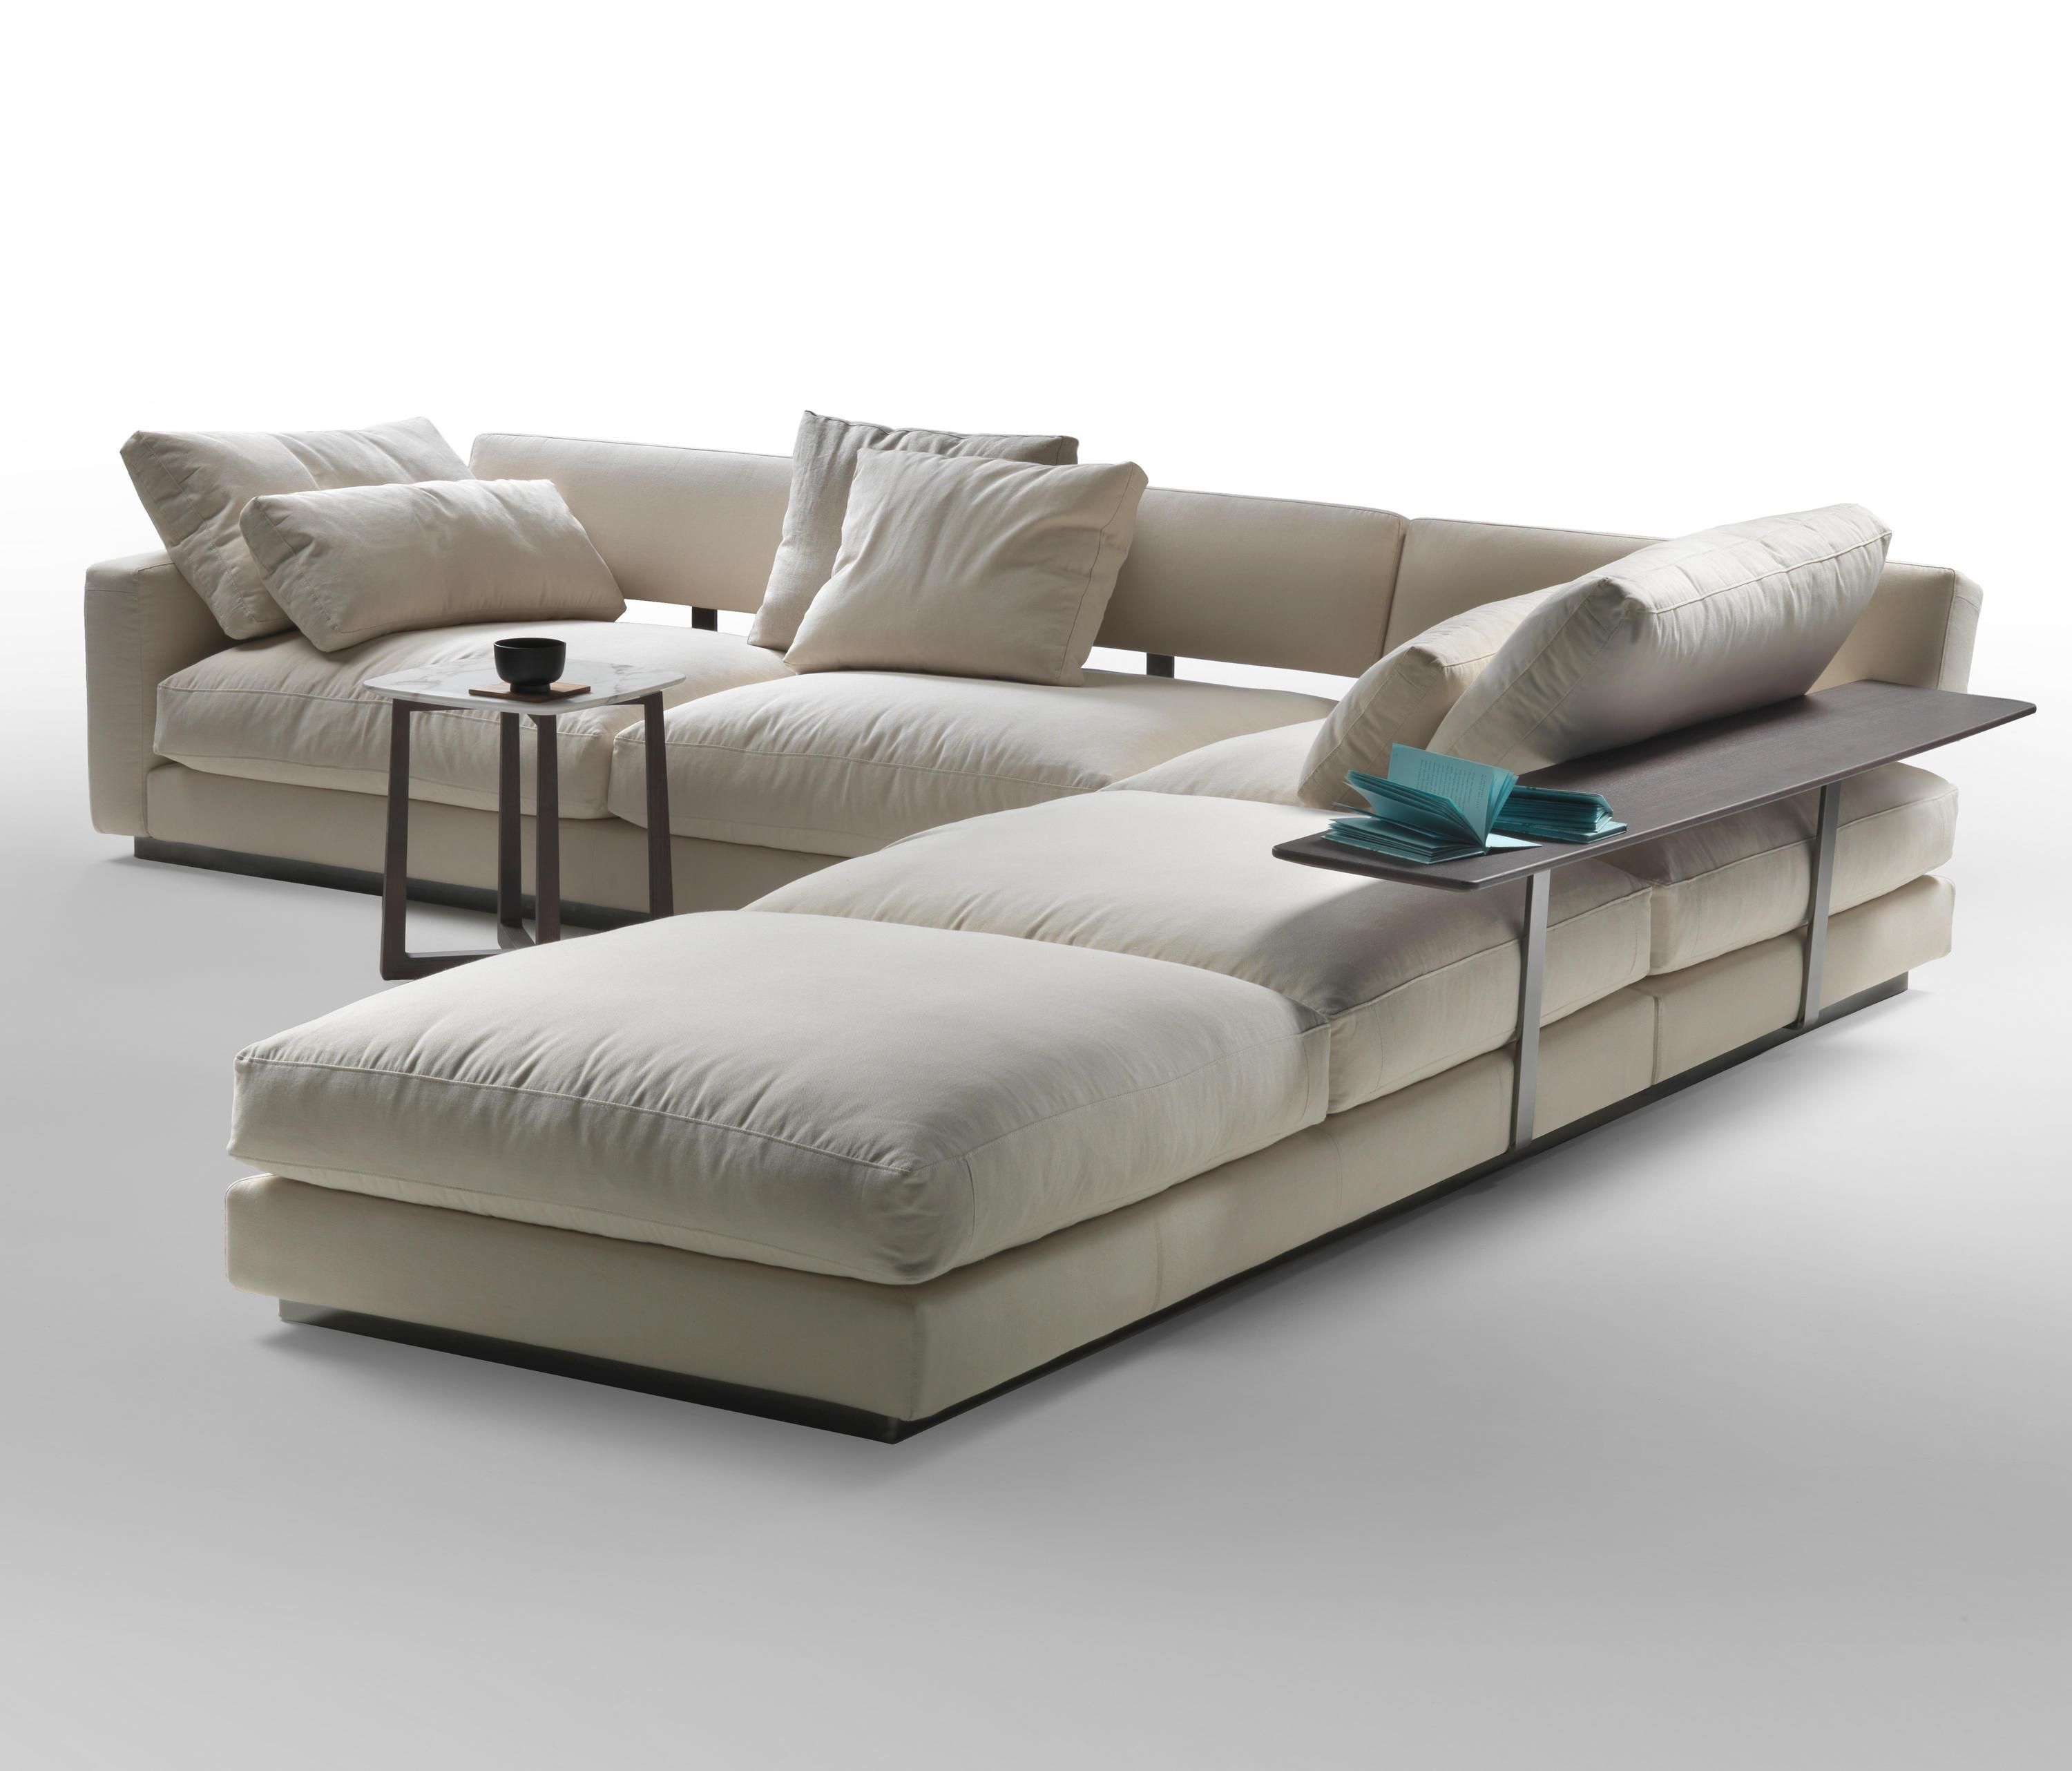 Flexform Sessel Fotos Flexform Sofas Upholstery Sofa Furniture Sofa Und